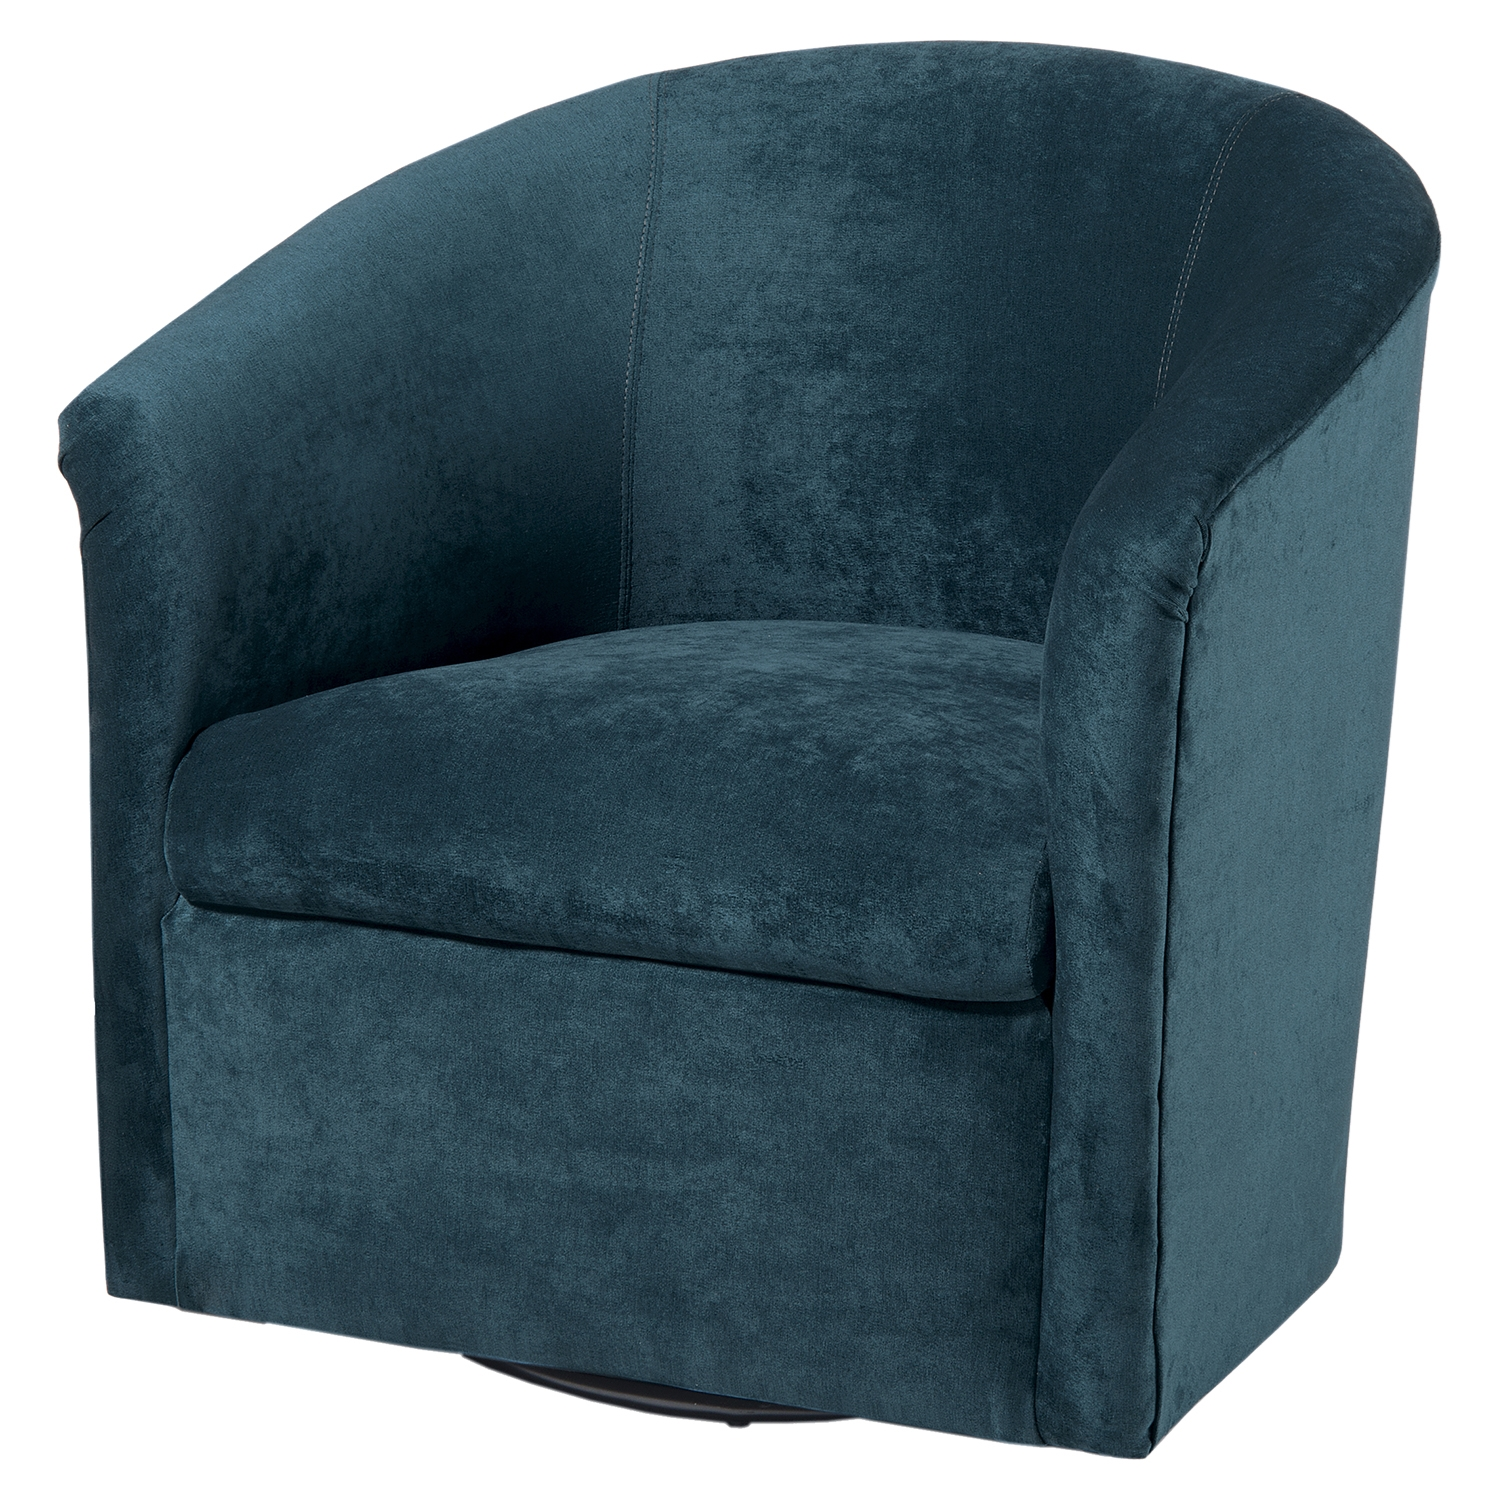 Elizabeth Swivel Chair - Ocean